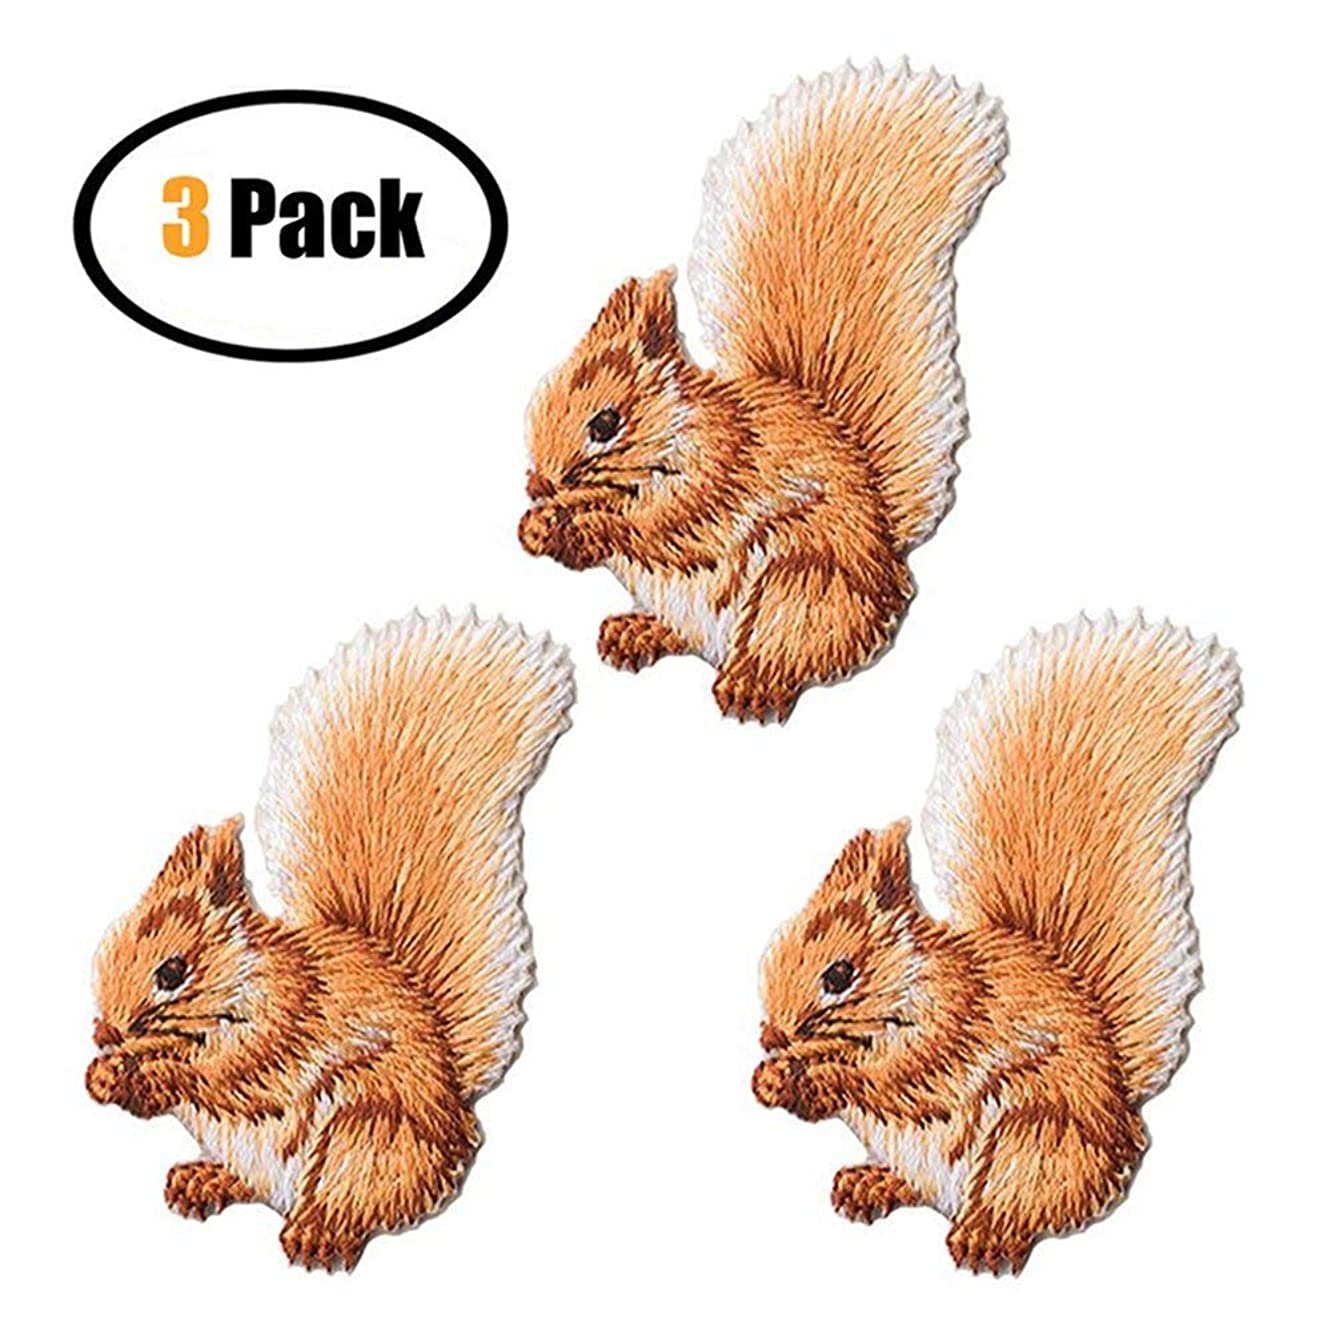 3 Pack Delicate Embroidered Patches, Cute Squirrel Embroidery Patches, Iron On Patches, Sew On Applique Patch, Custom Backpack Patches for Men, Women, Boys, Girls, Kids, Super Cool!